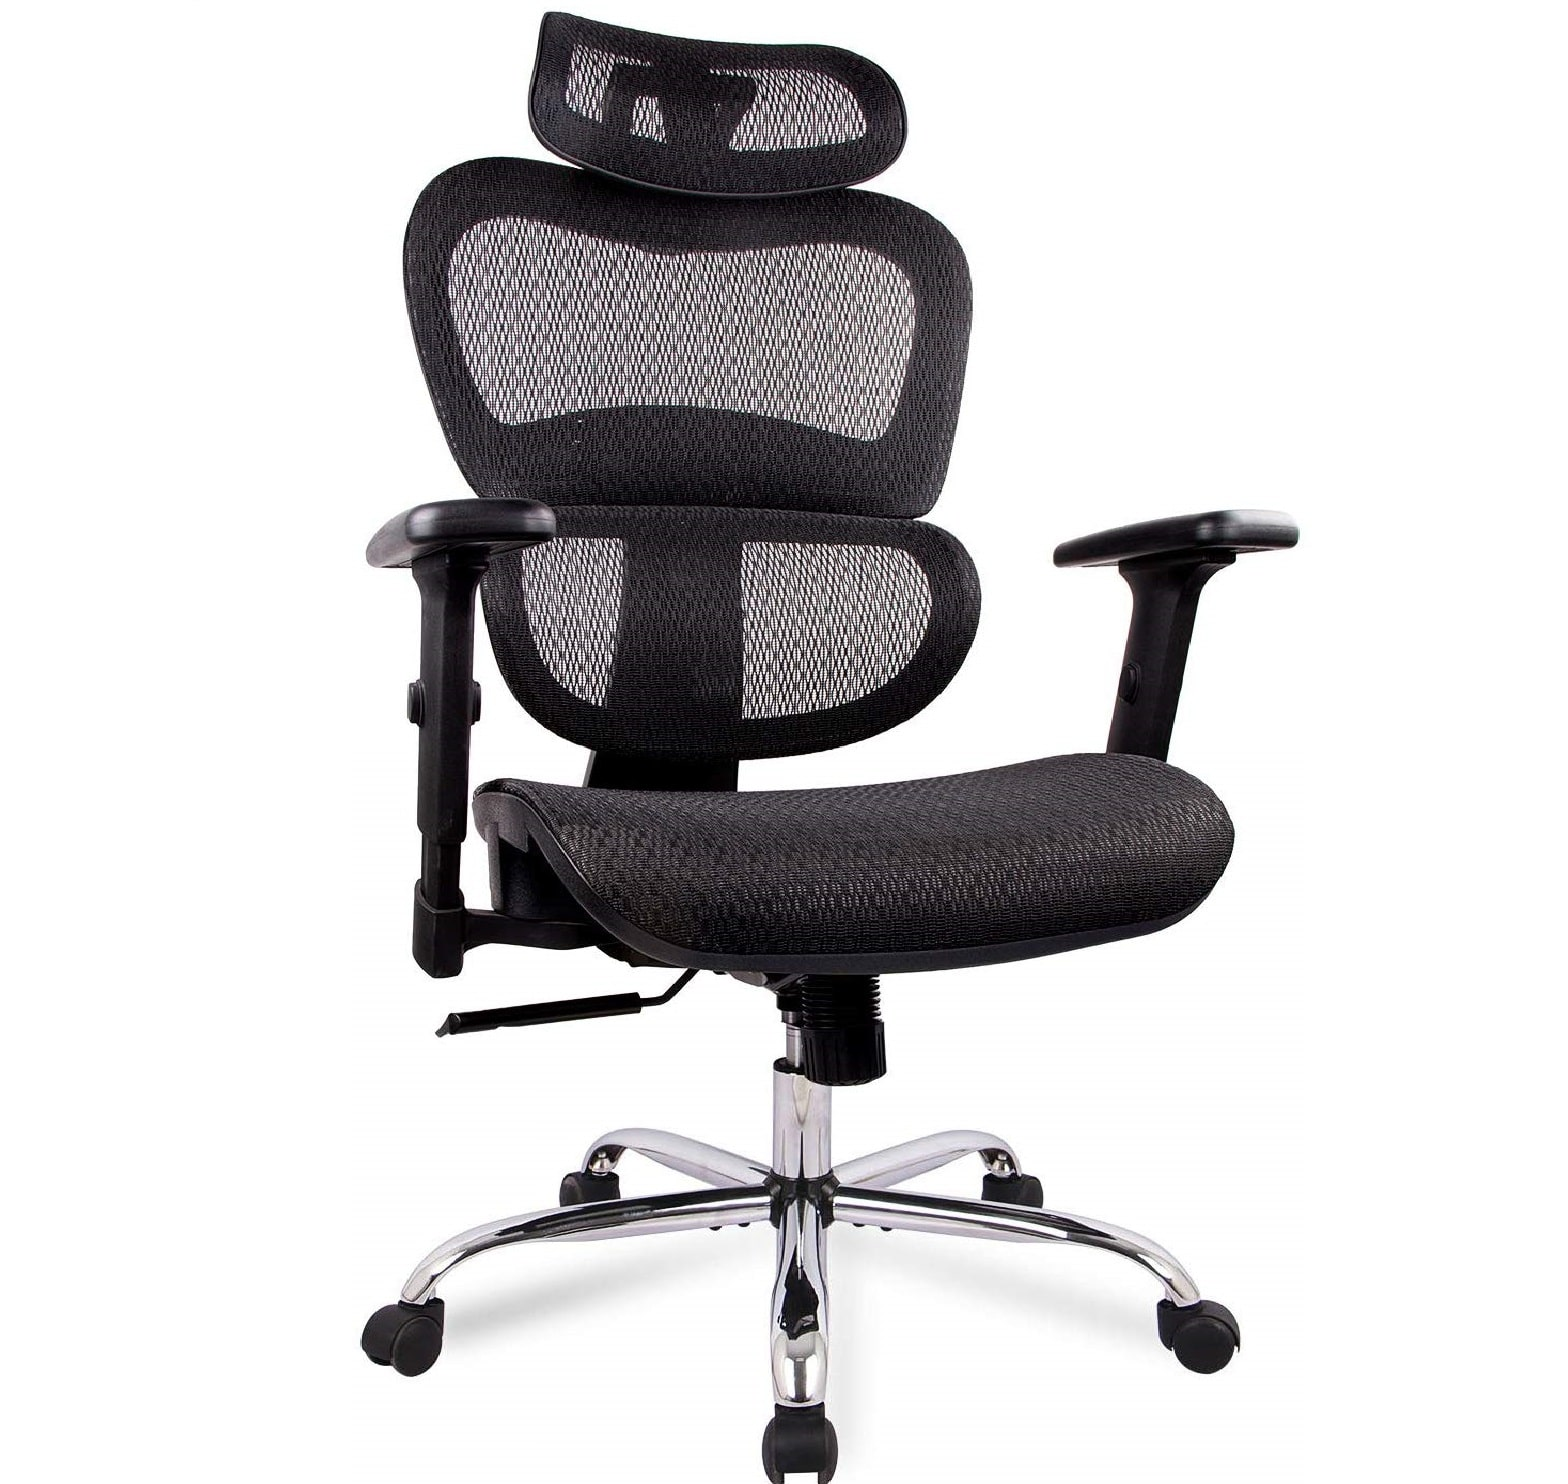 9.Office Chair, Ergonomics Mesh Chair Computer Chair Desk Chair High Back Chair w Adjustable Headrest and Armrest